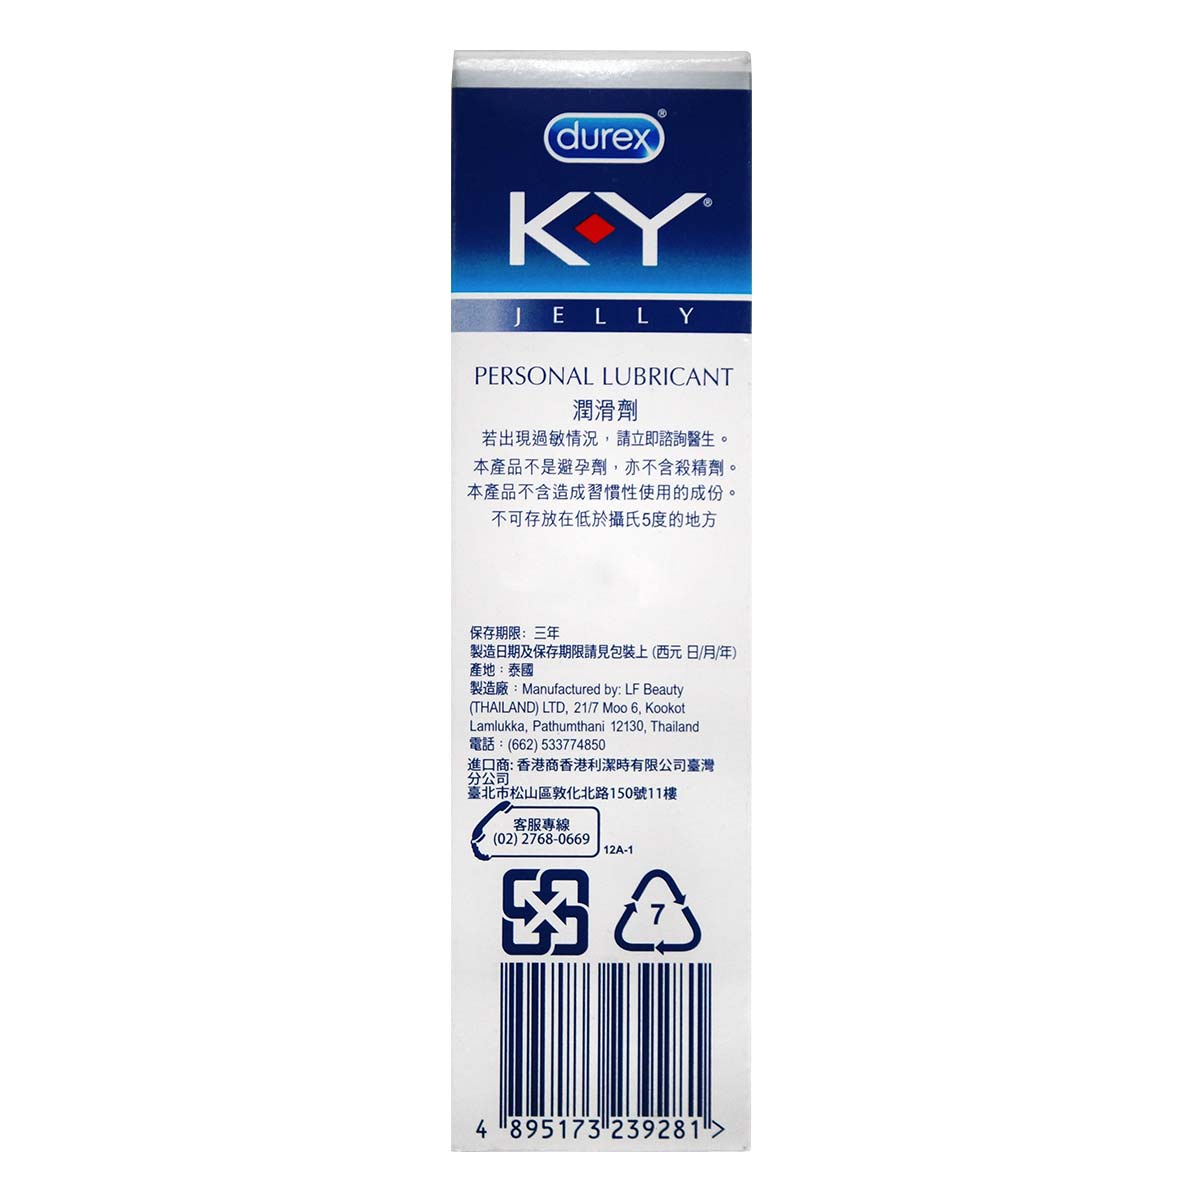 Durex KY Jelly 100g Water-based Lubricant